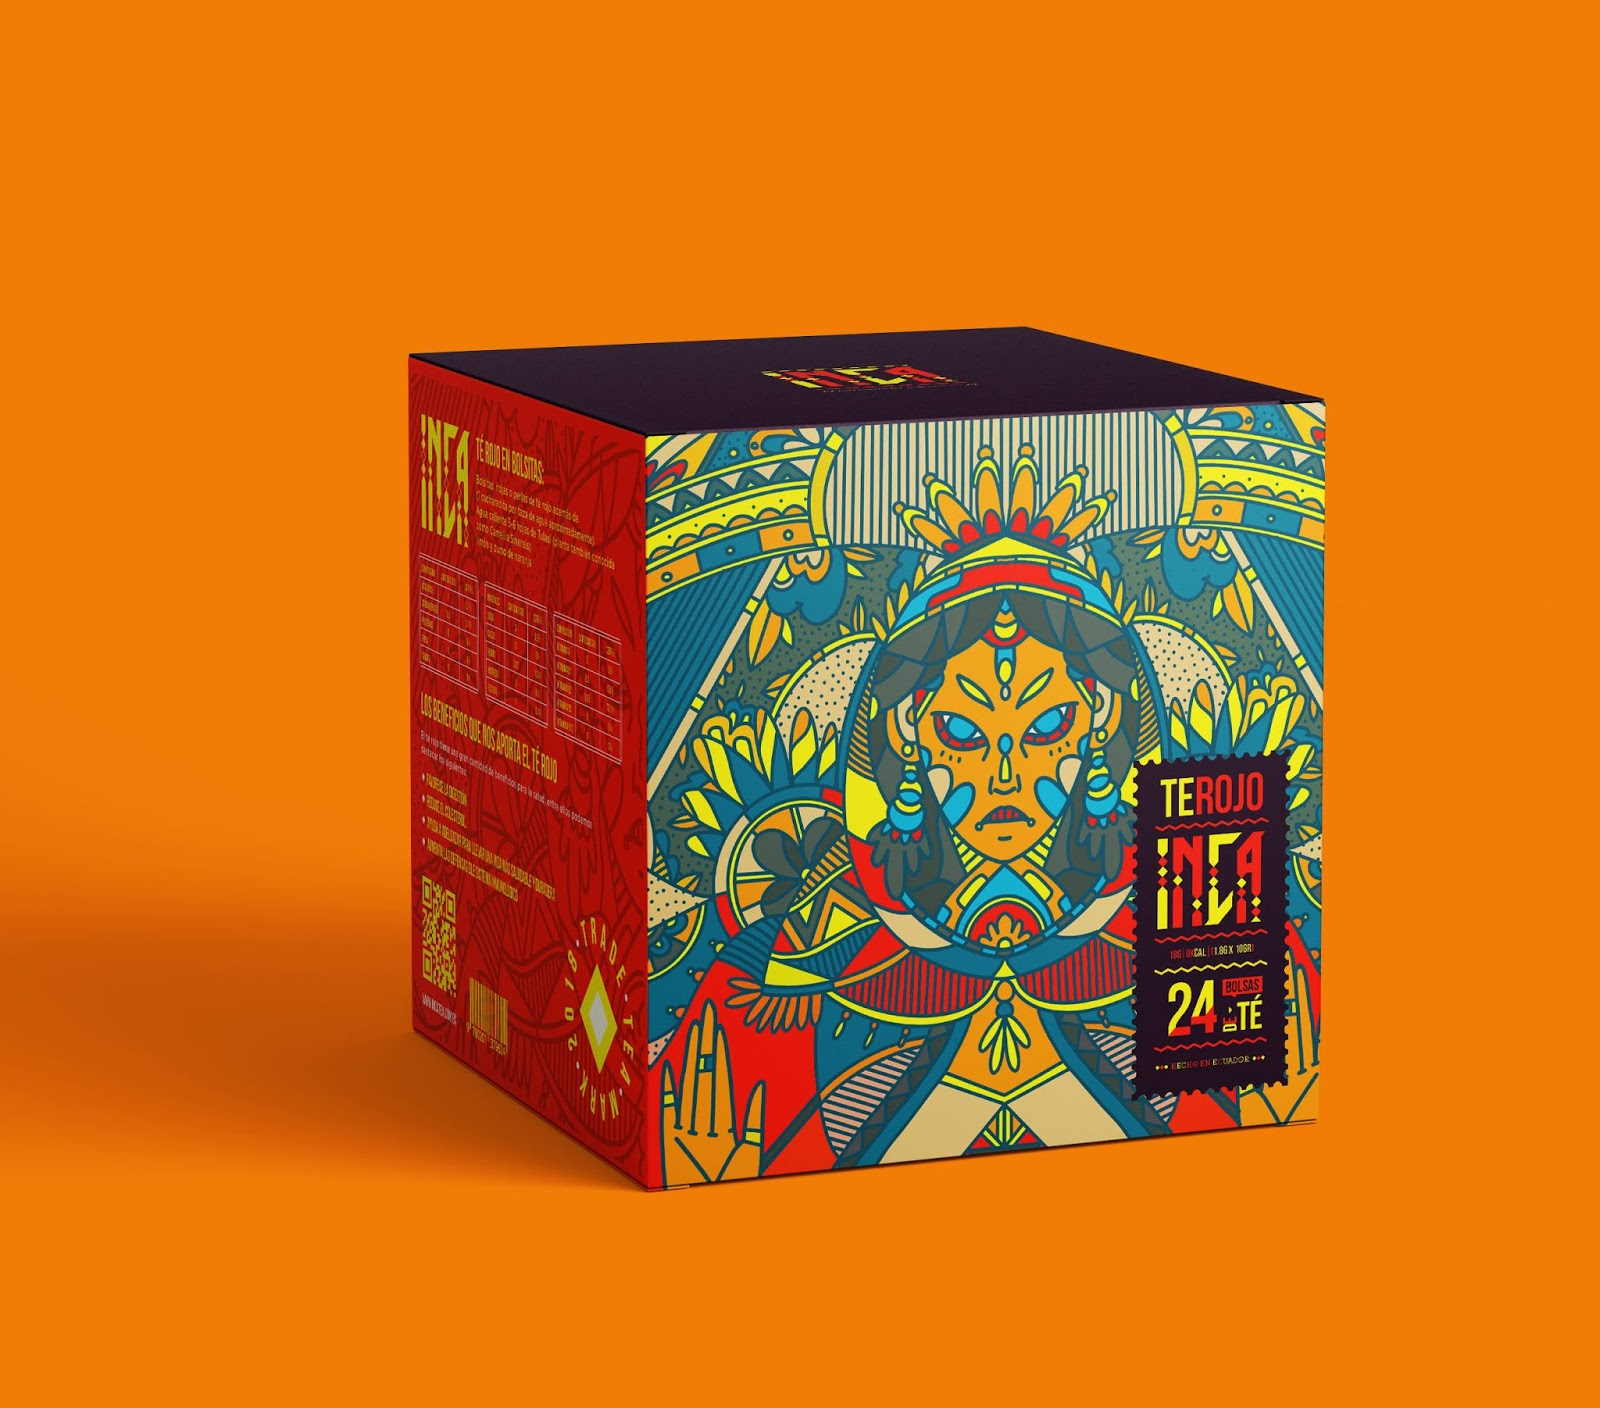 Inca Tea Bags Inti God Of Sun On Packaging Of The World